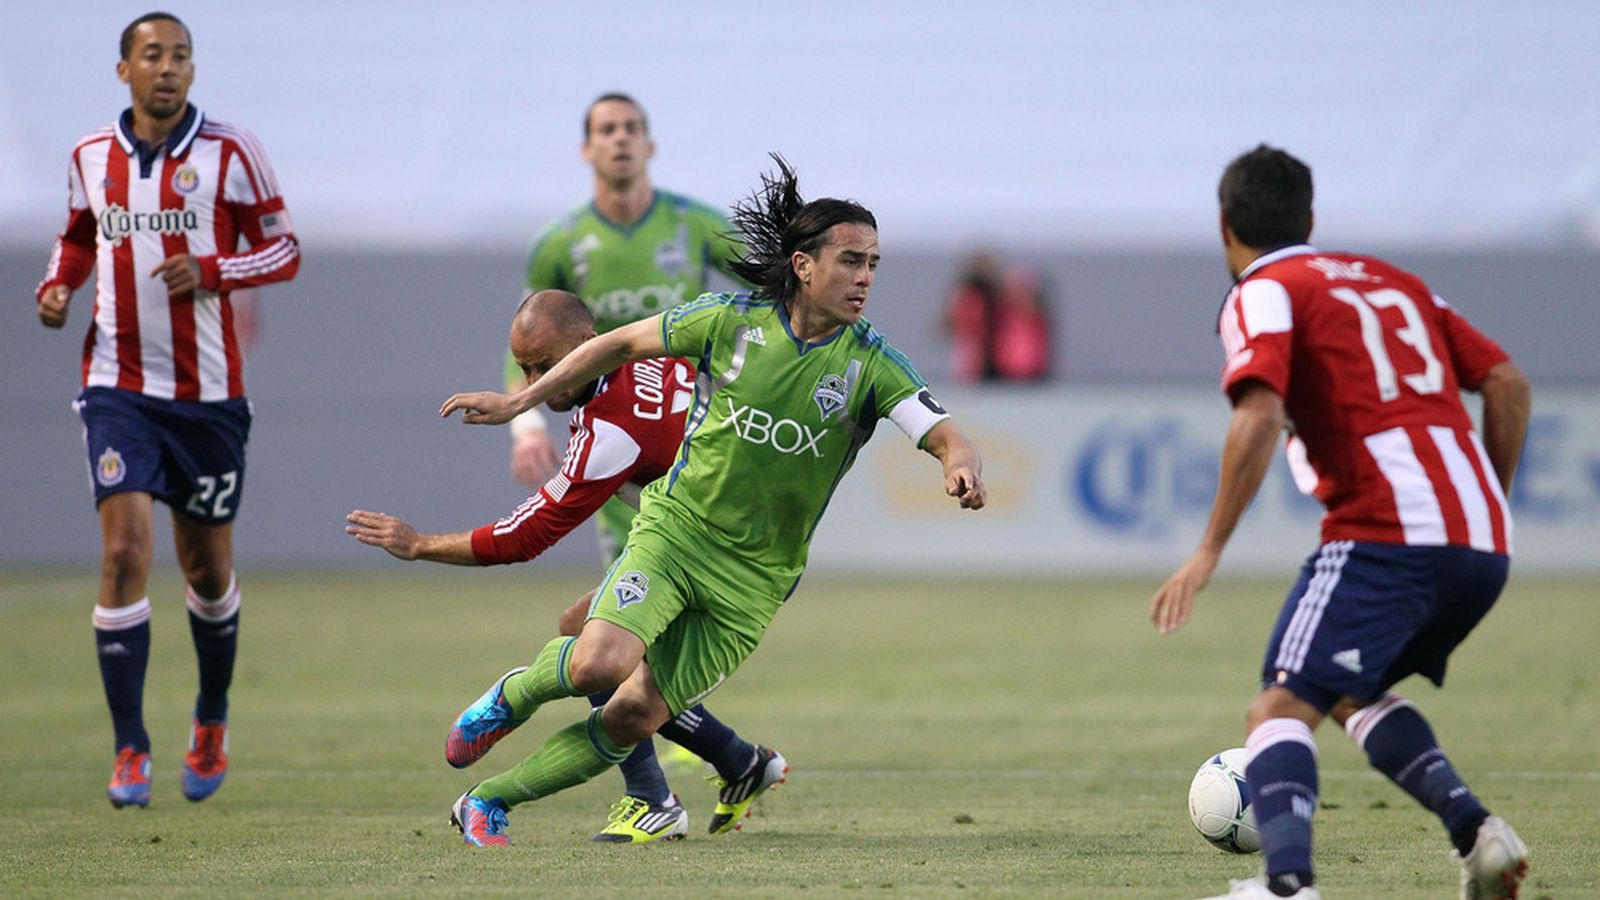 Seattle Sounders Vs. Chivas USA: Sounders Equal Club Record For Goals Scored In MLS With 6-2 Win ...